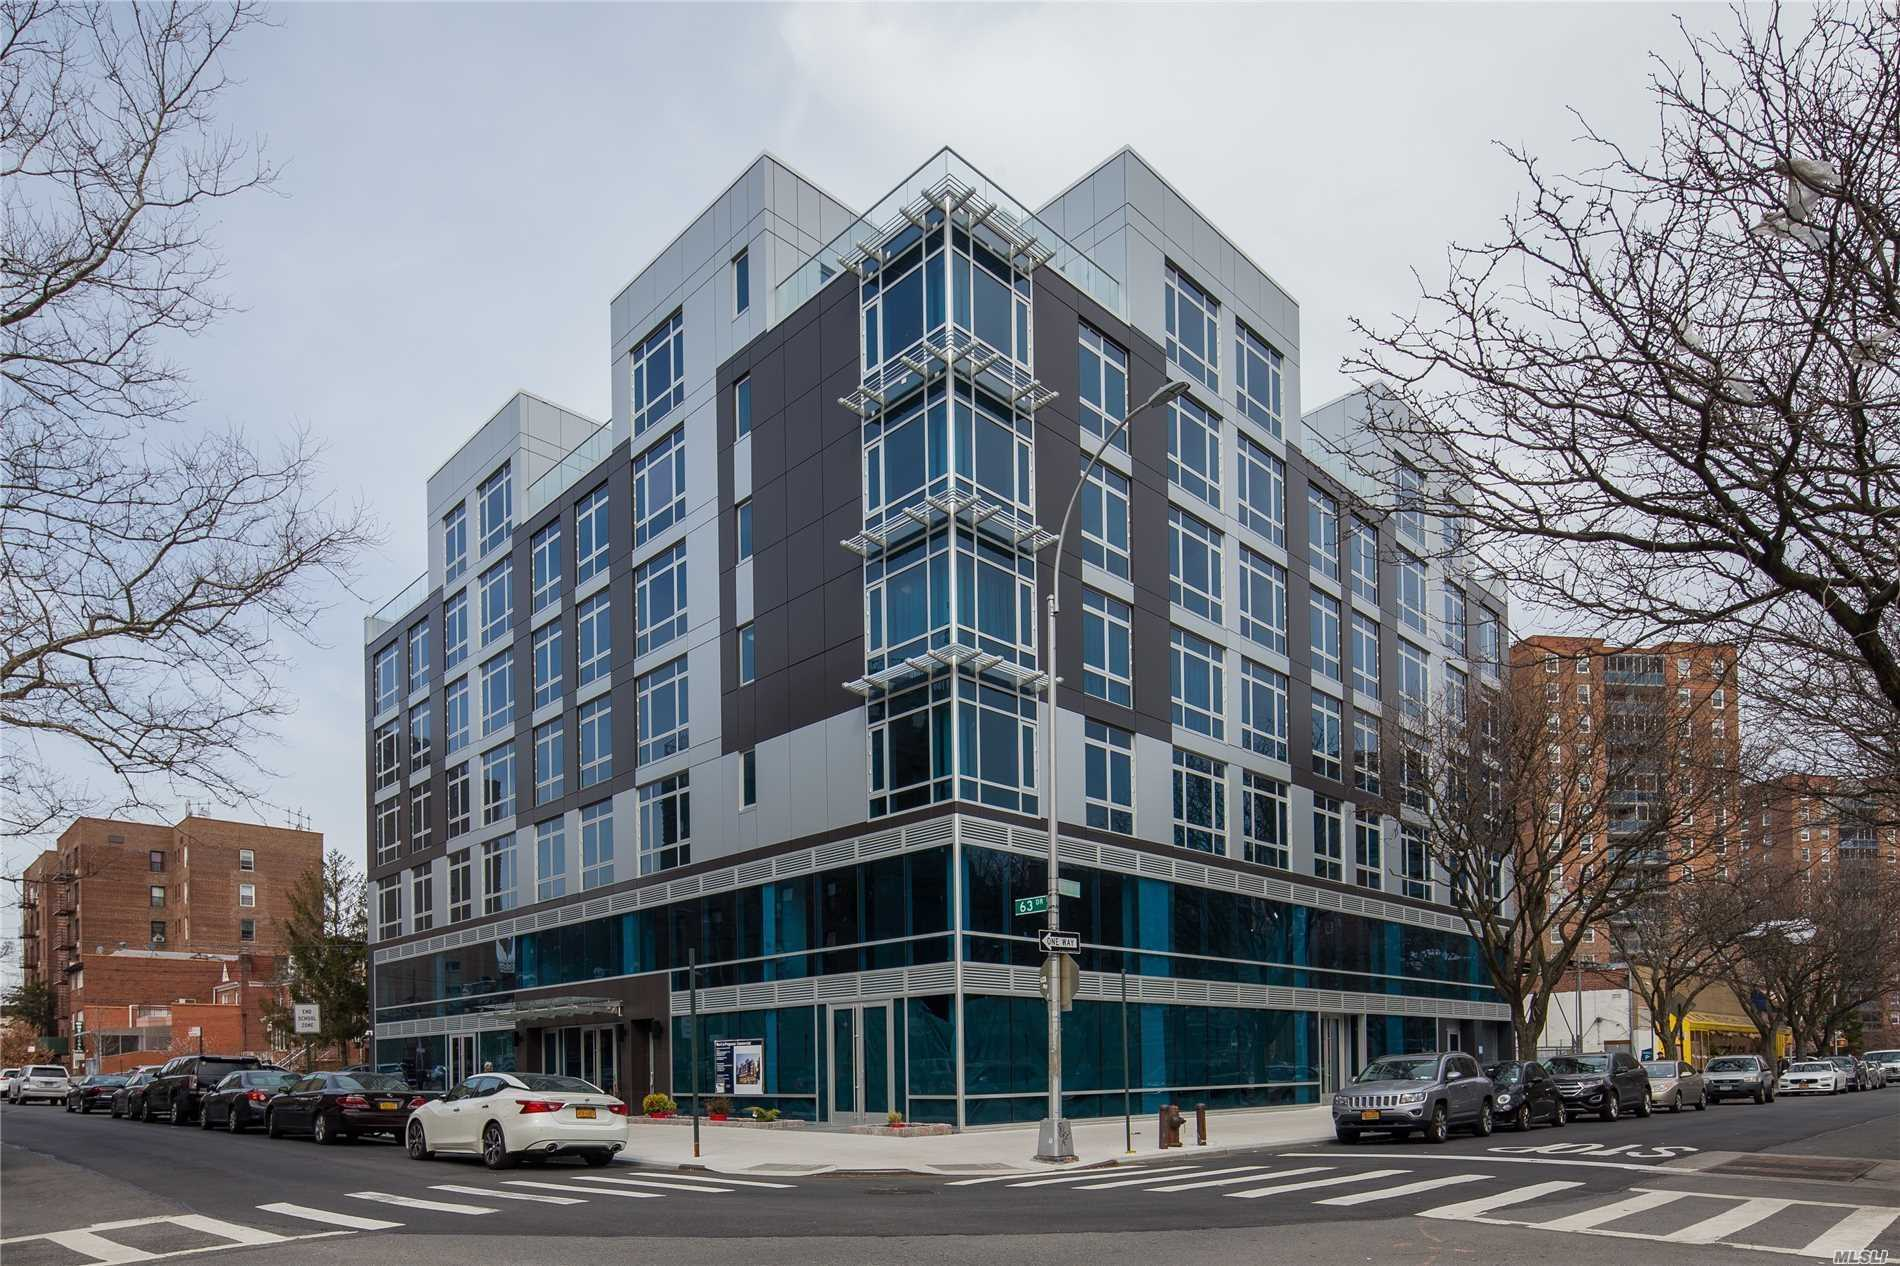 Acquisto commerciale in 97-45 63 Dr, Rego Park, NY ,11374